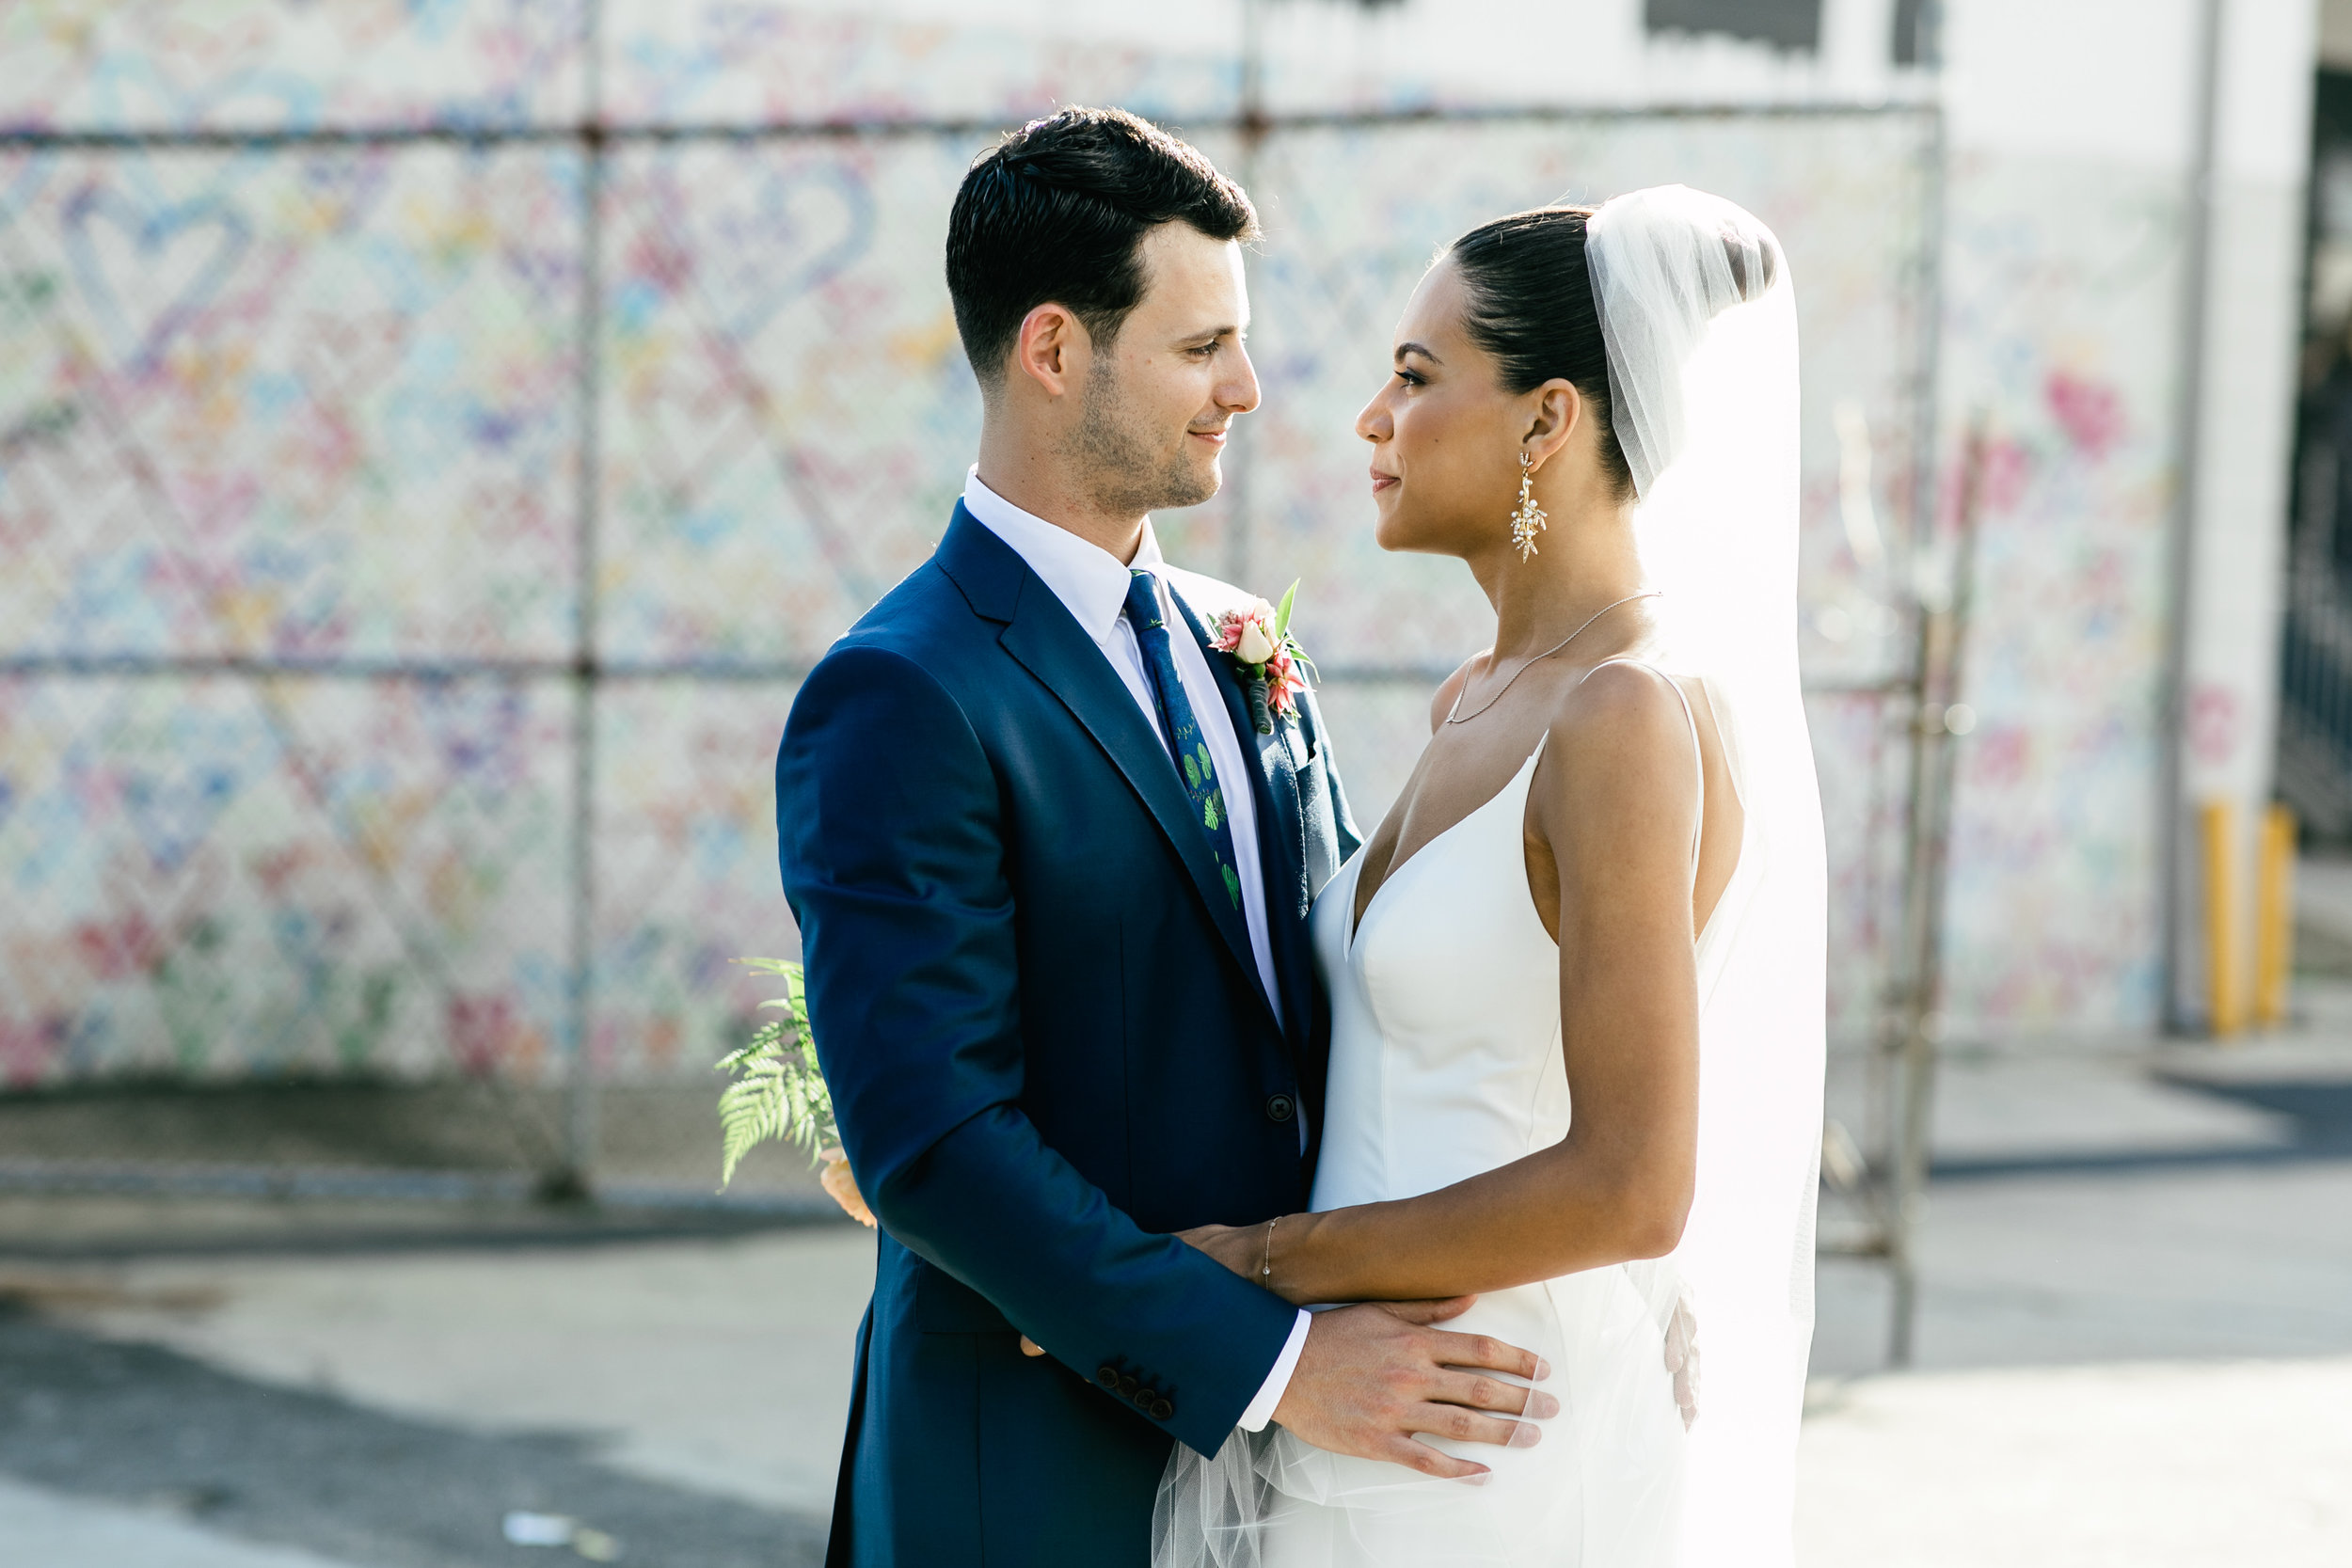 photography-wedding-weddings-natural-candid-dock 5 dc-washington dc-philadelphia-mixed race-editorial-modern-fine-art-026.JPG